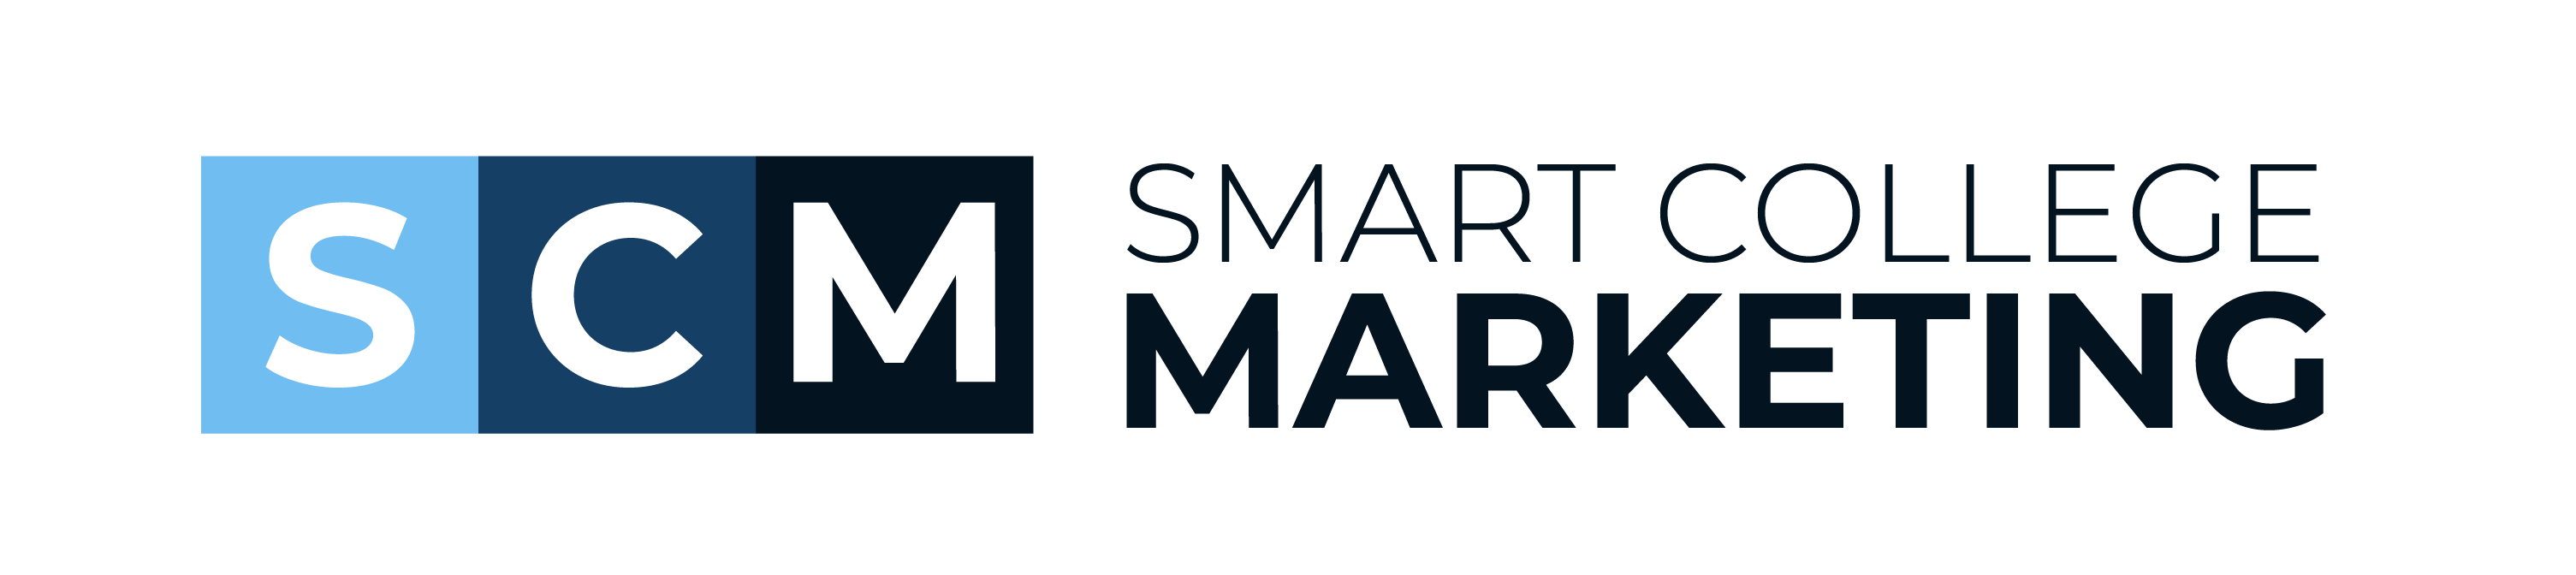 Smart College Marketing New Logo-01